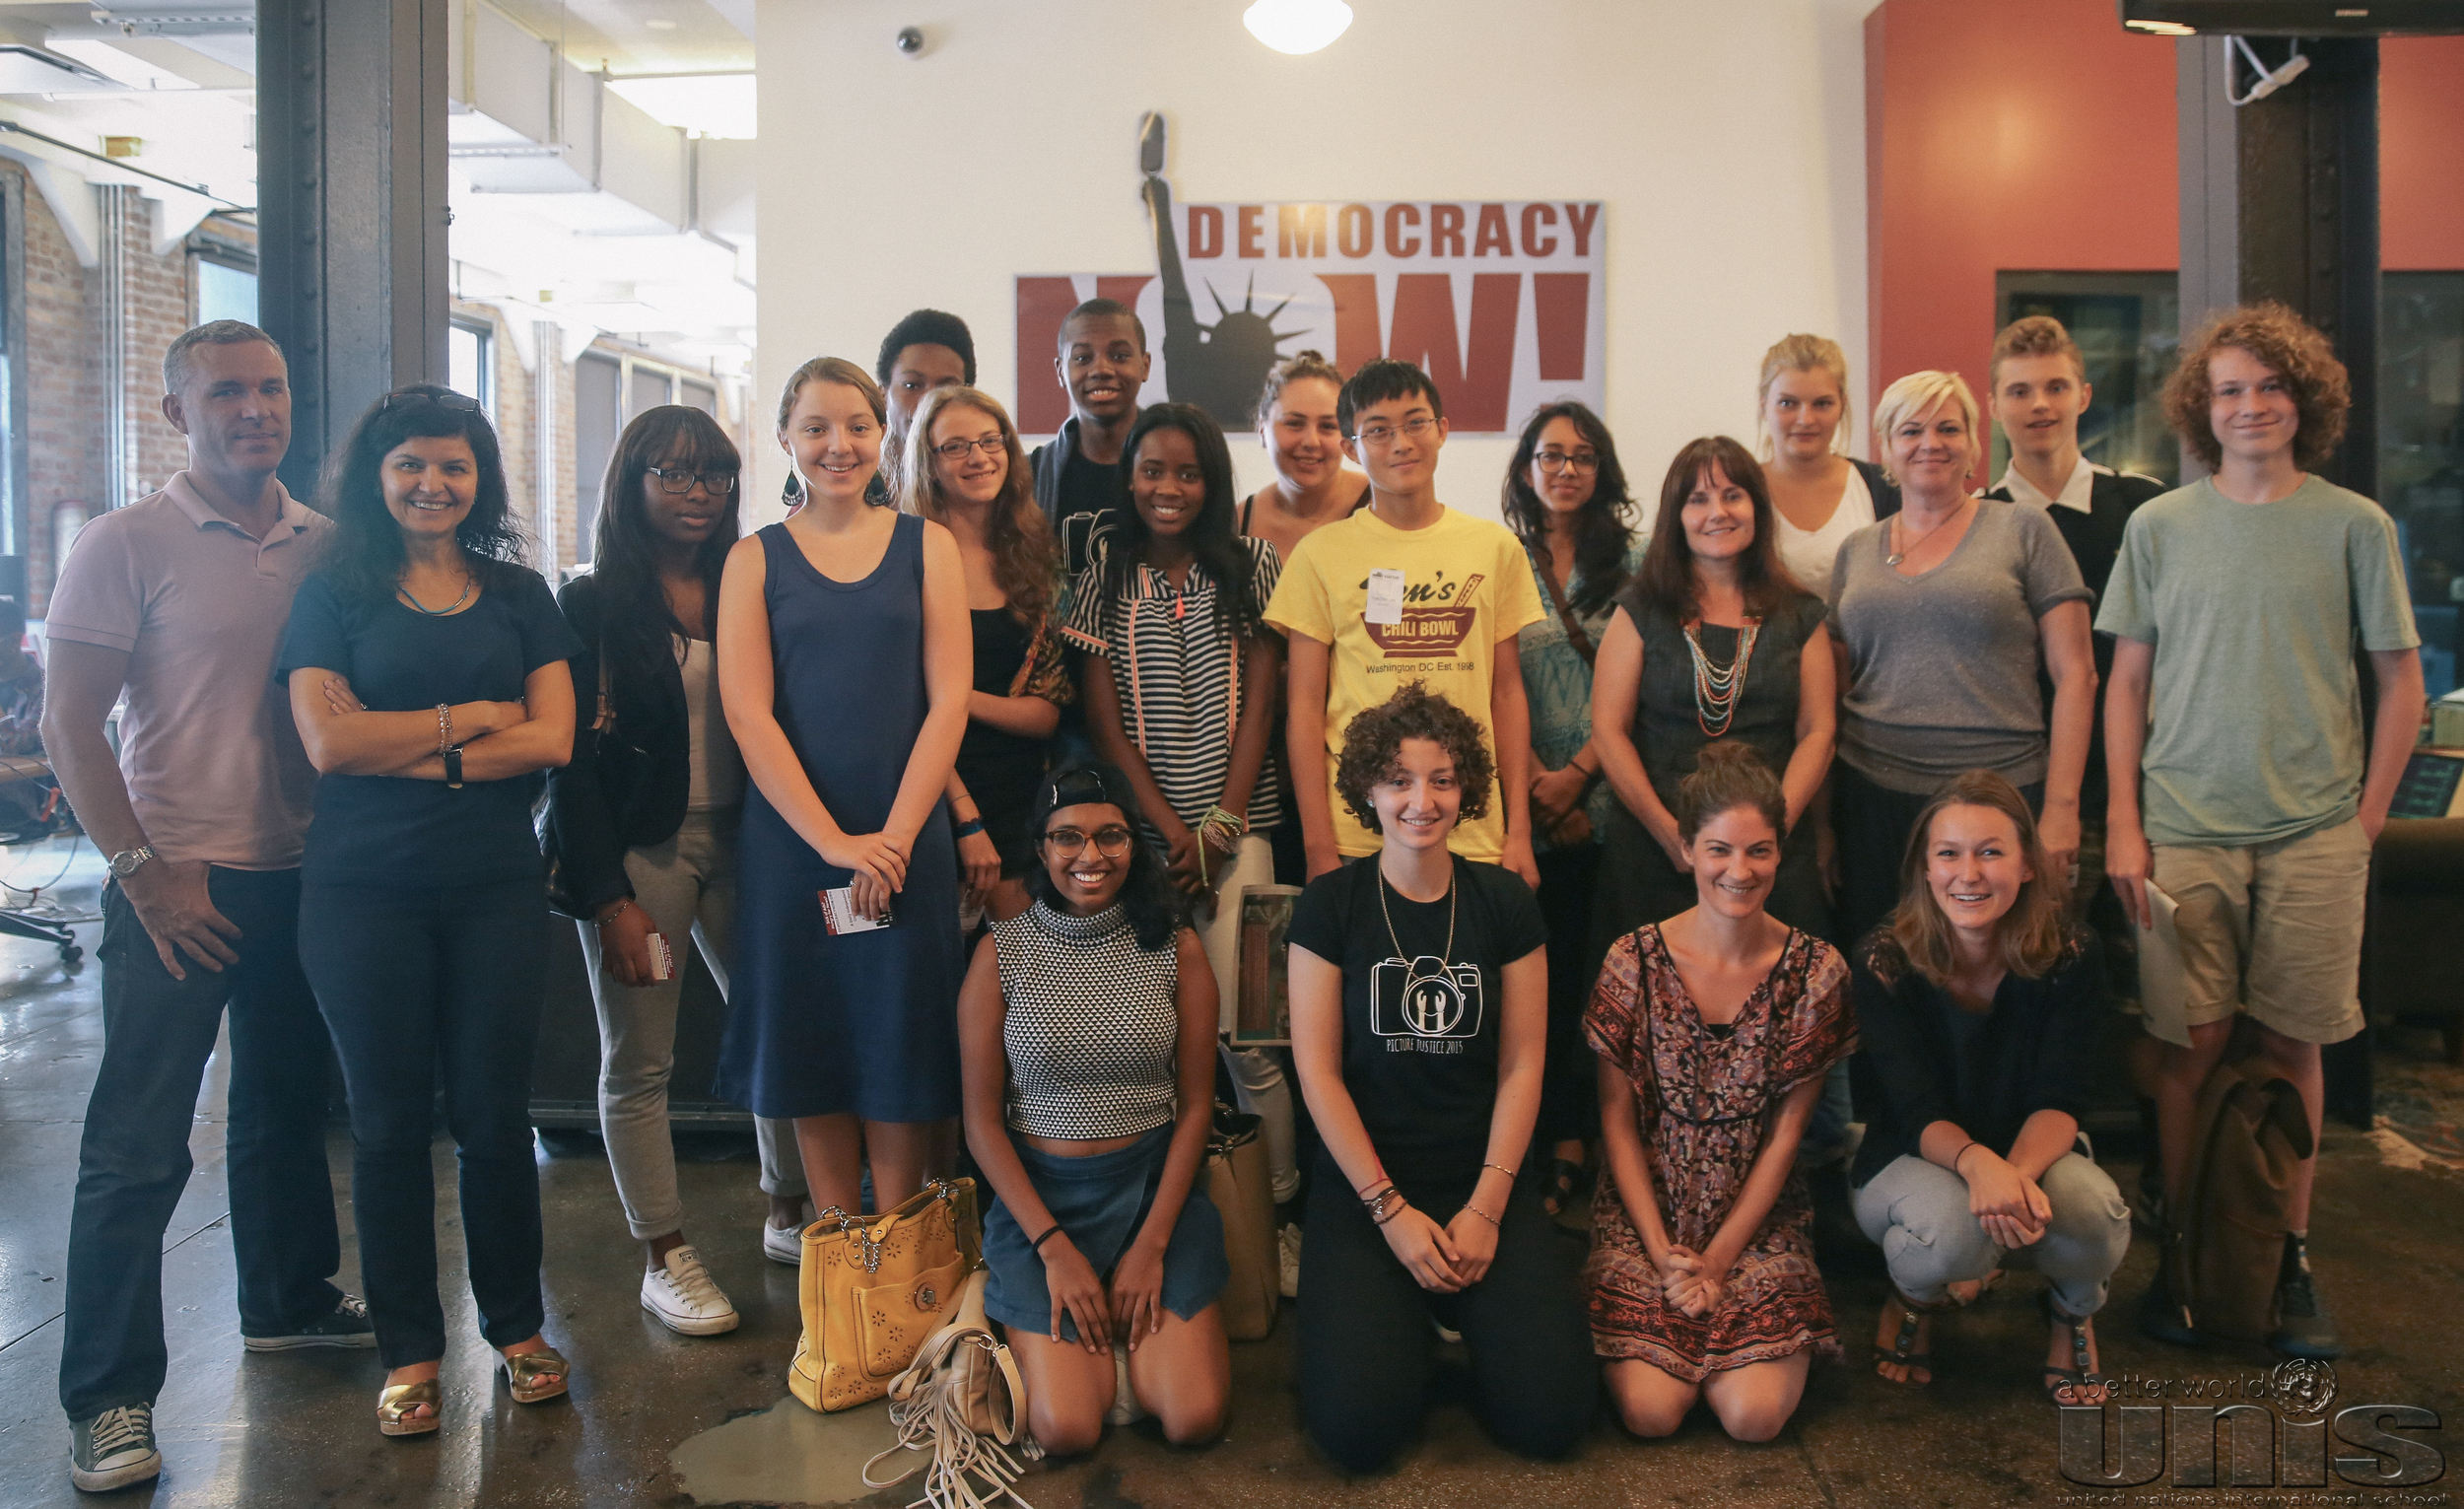 Picture Justice participants at Democracy Now! Photo courtesy of Ligeia Moltisanti